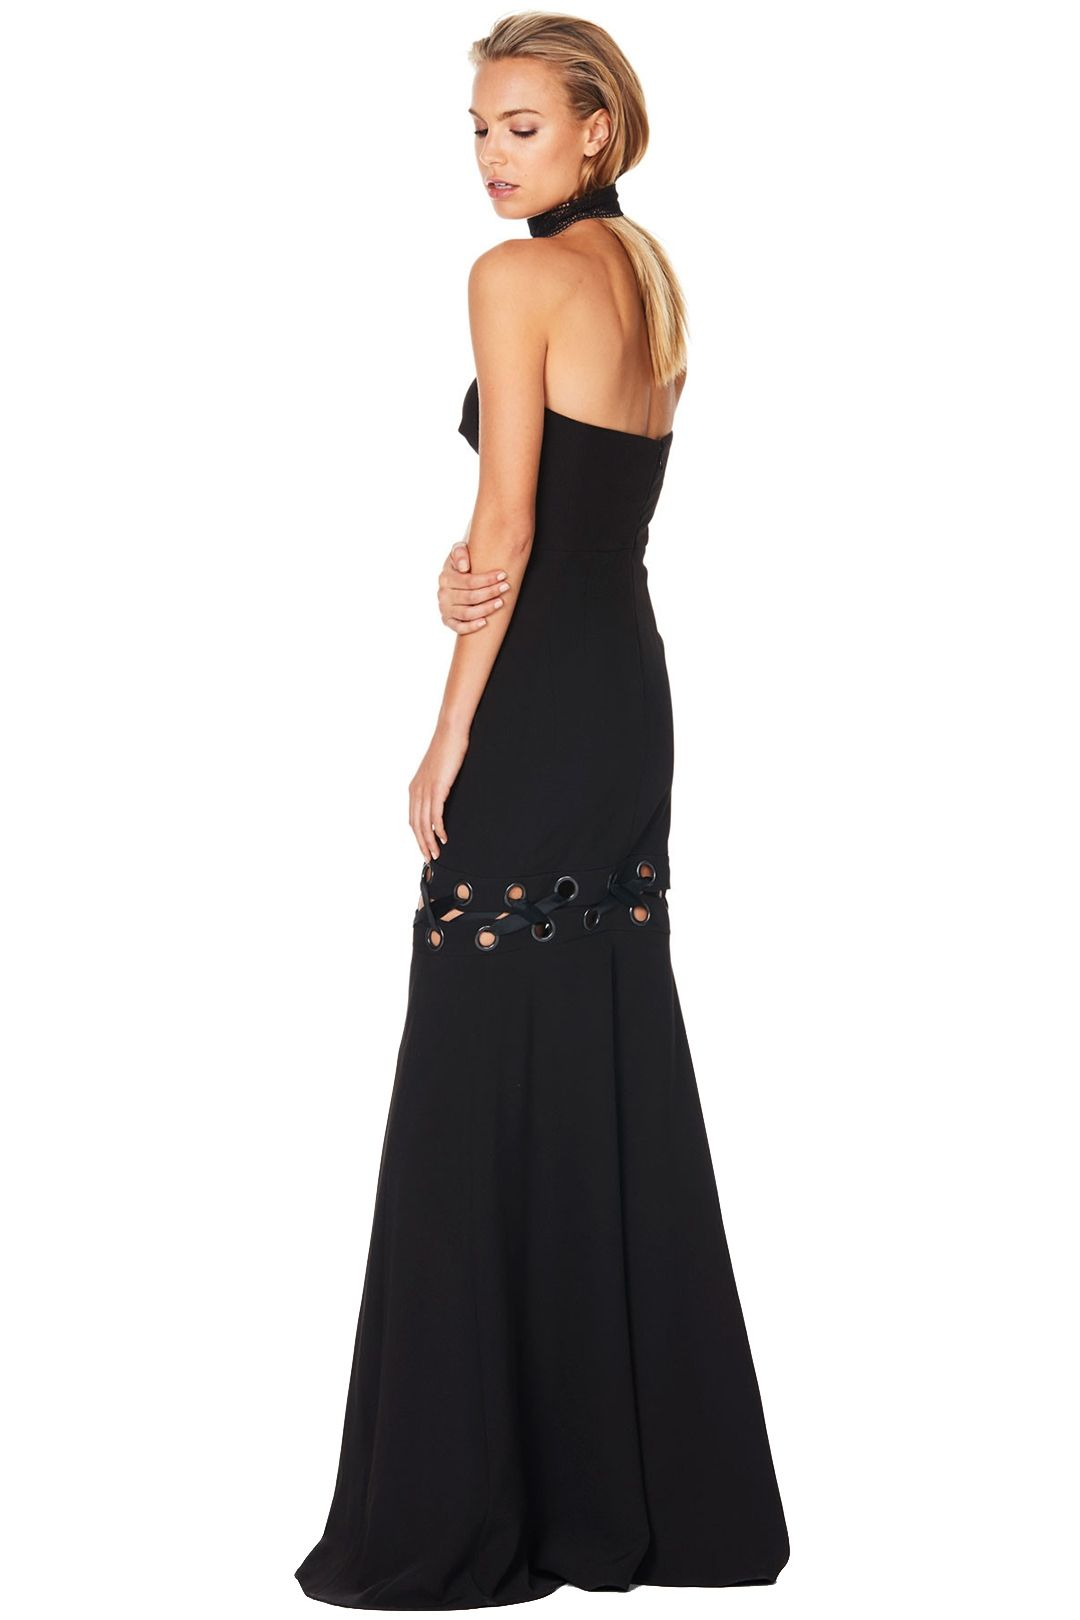 Talulah - Lace Me Gown - Black - Back